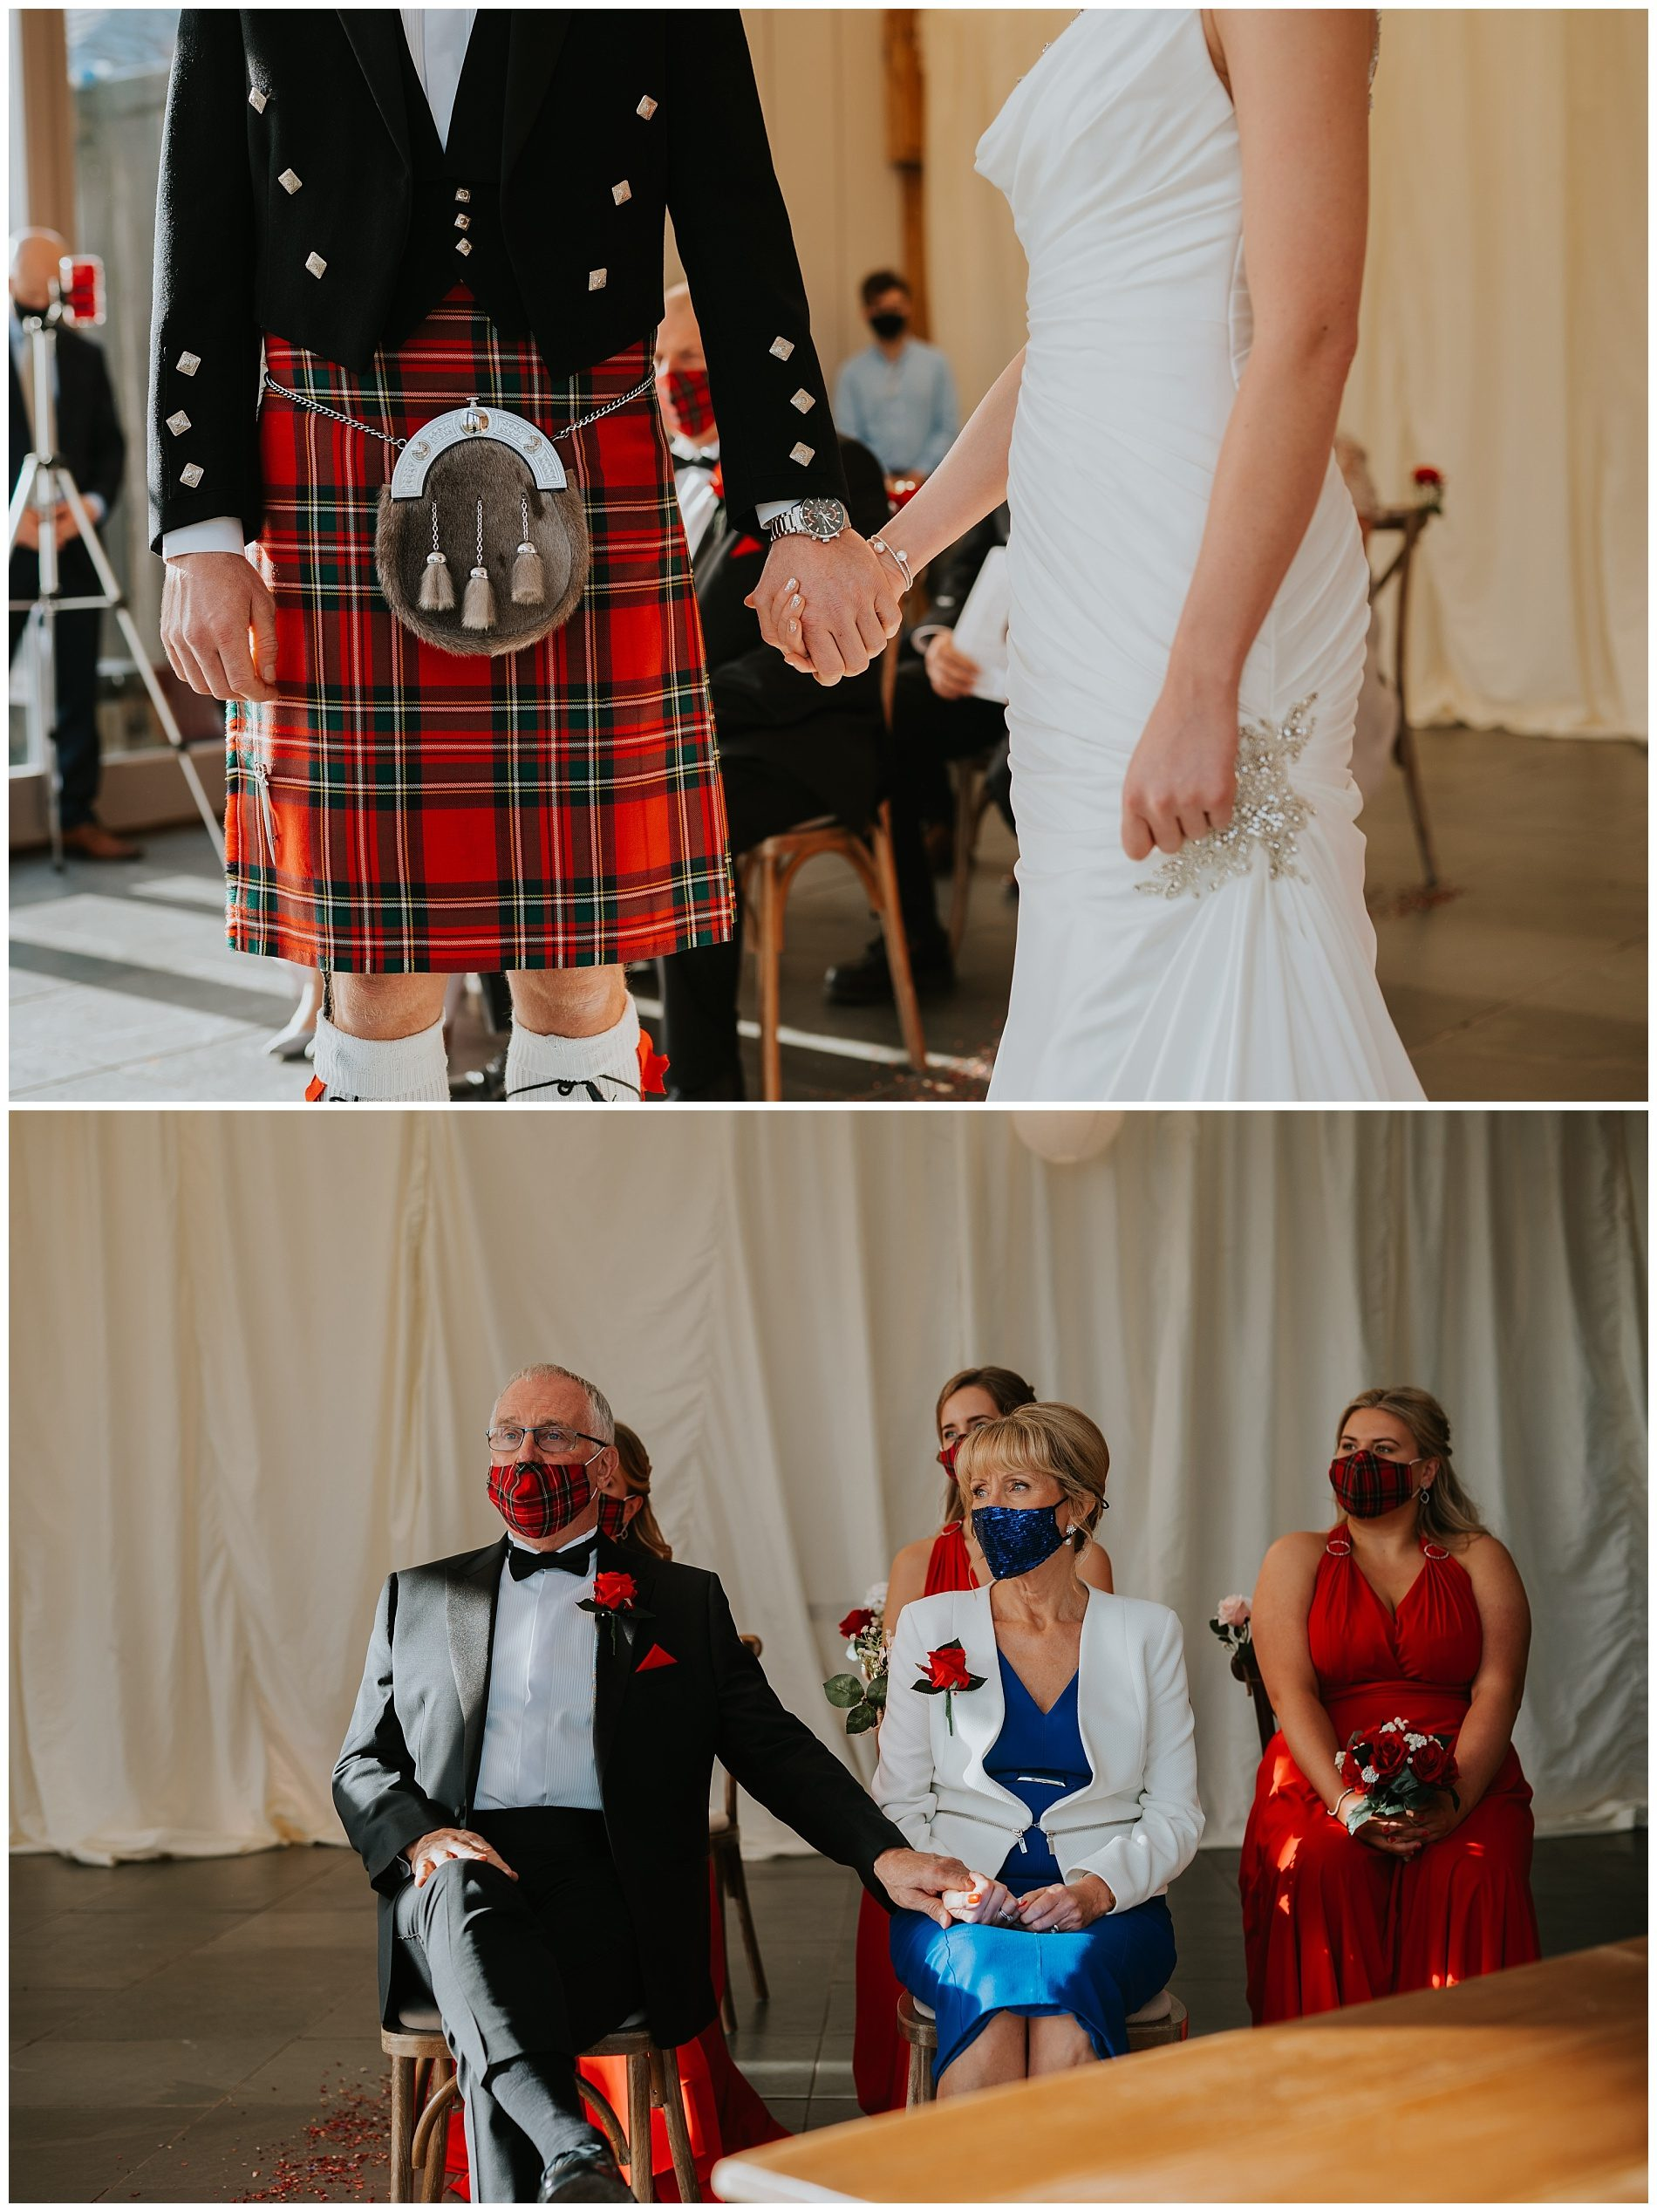 Groom wearing tartan holding brides hand. Mother and father of bride holding hands